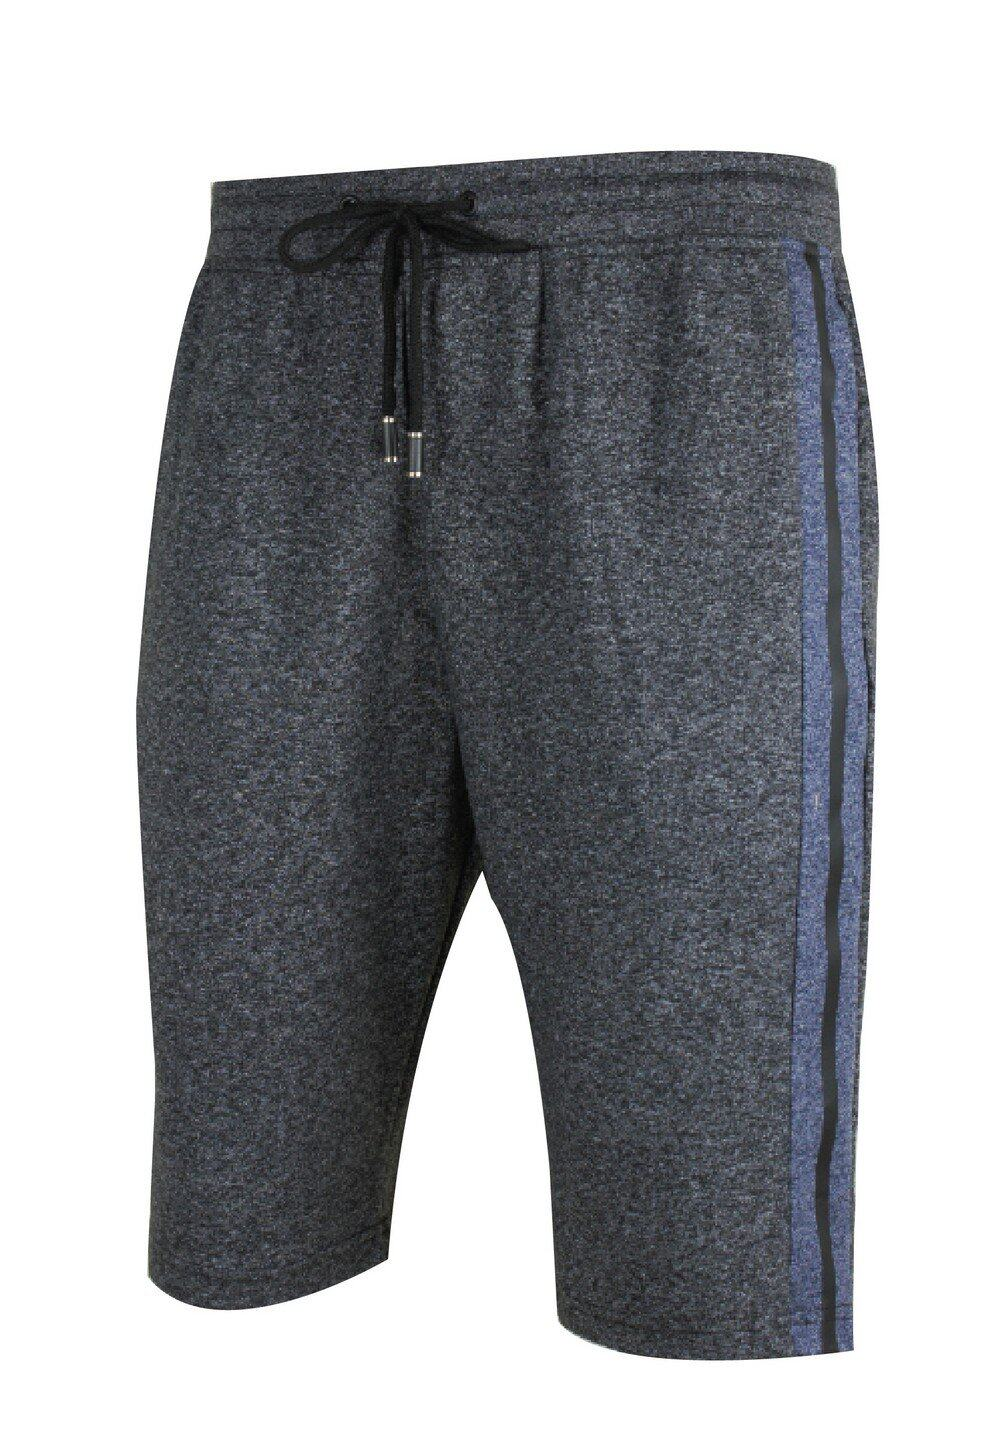 Exhaust Comfy Jogger Short Pants 799